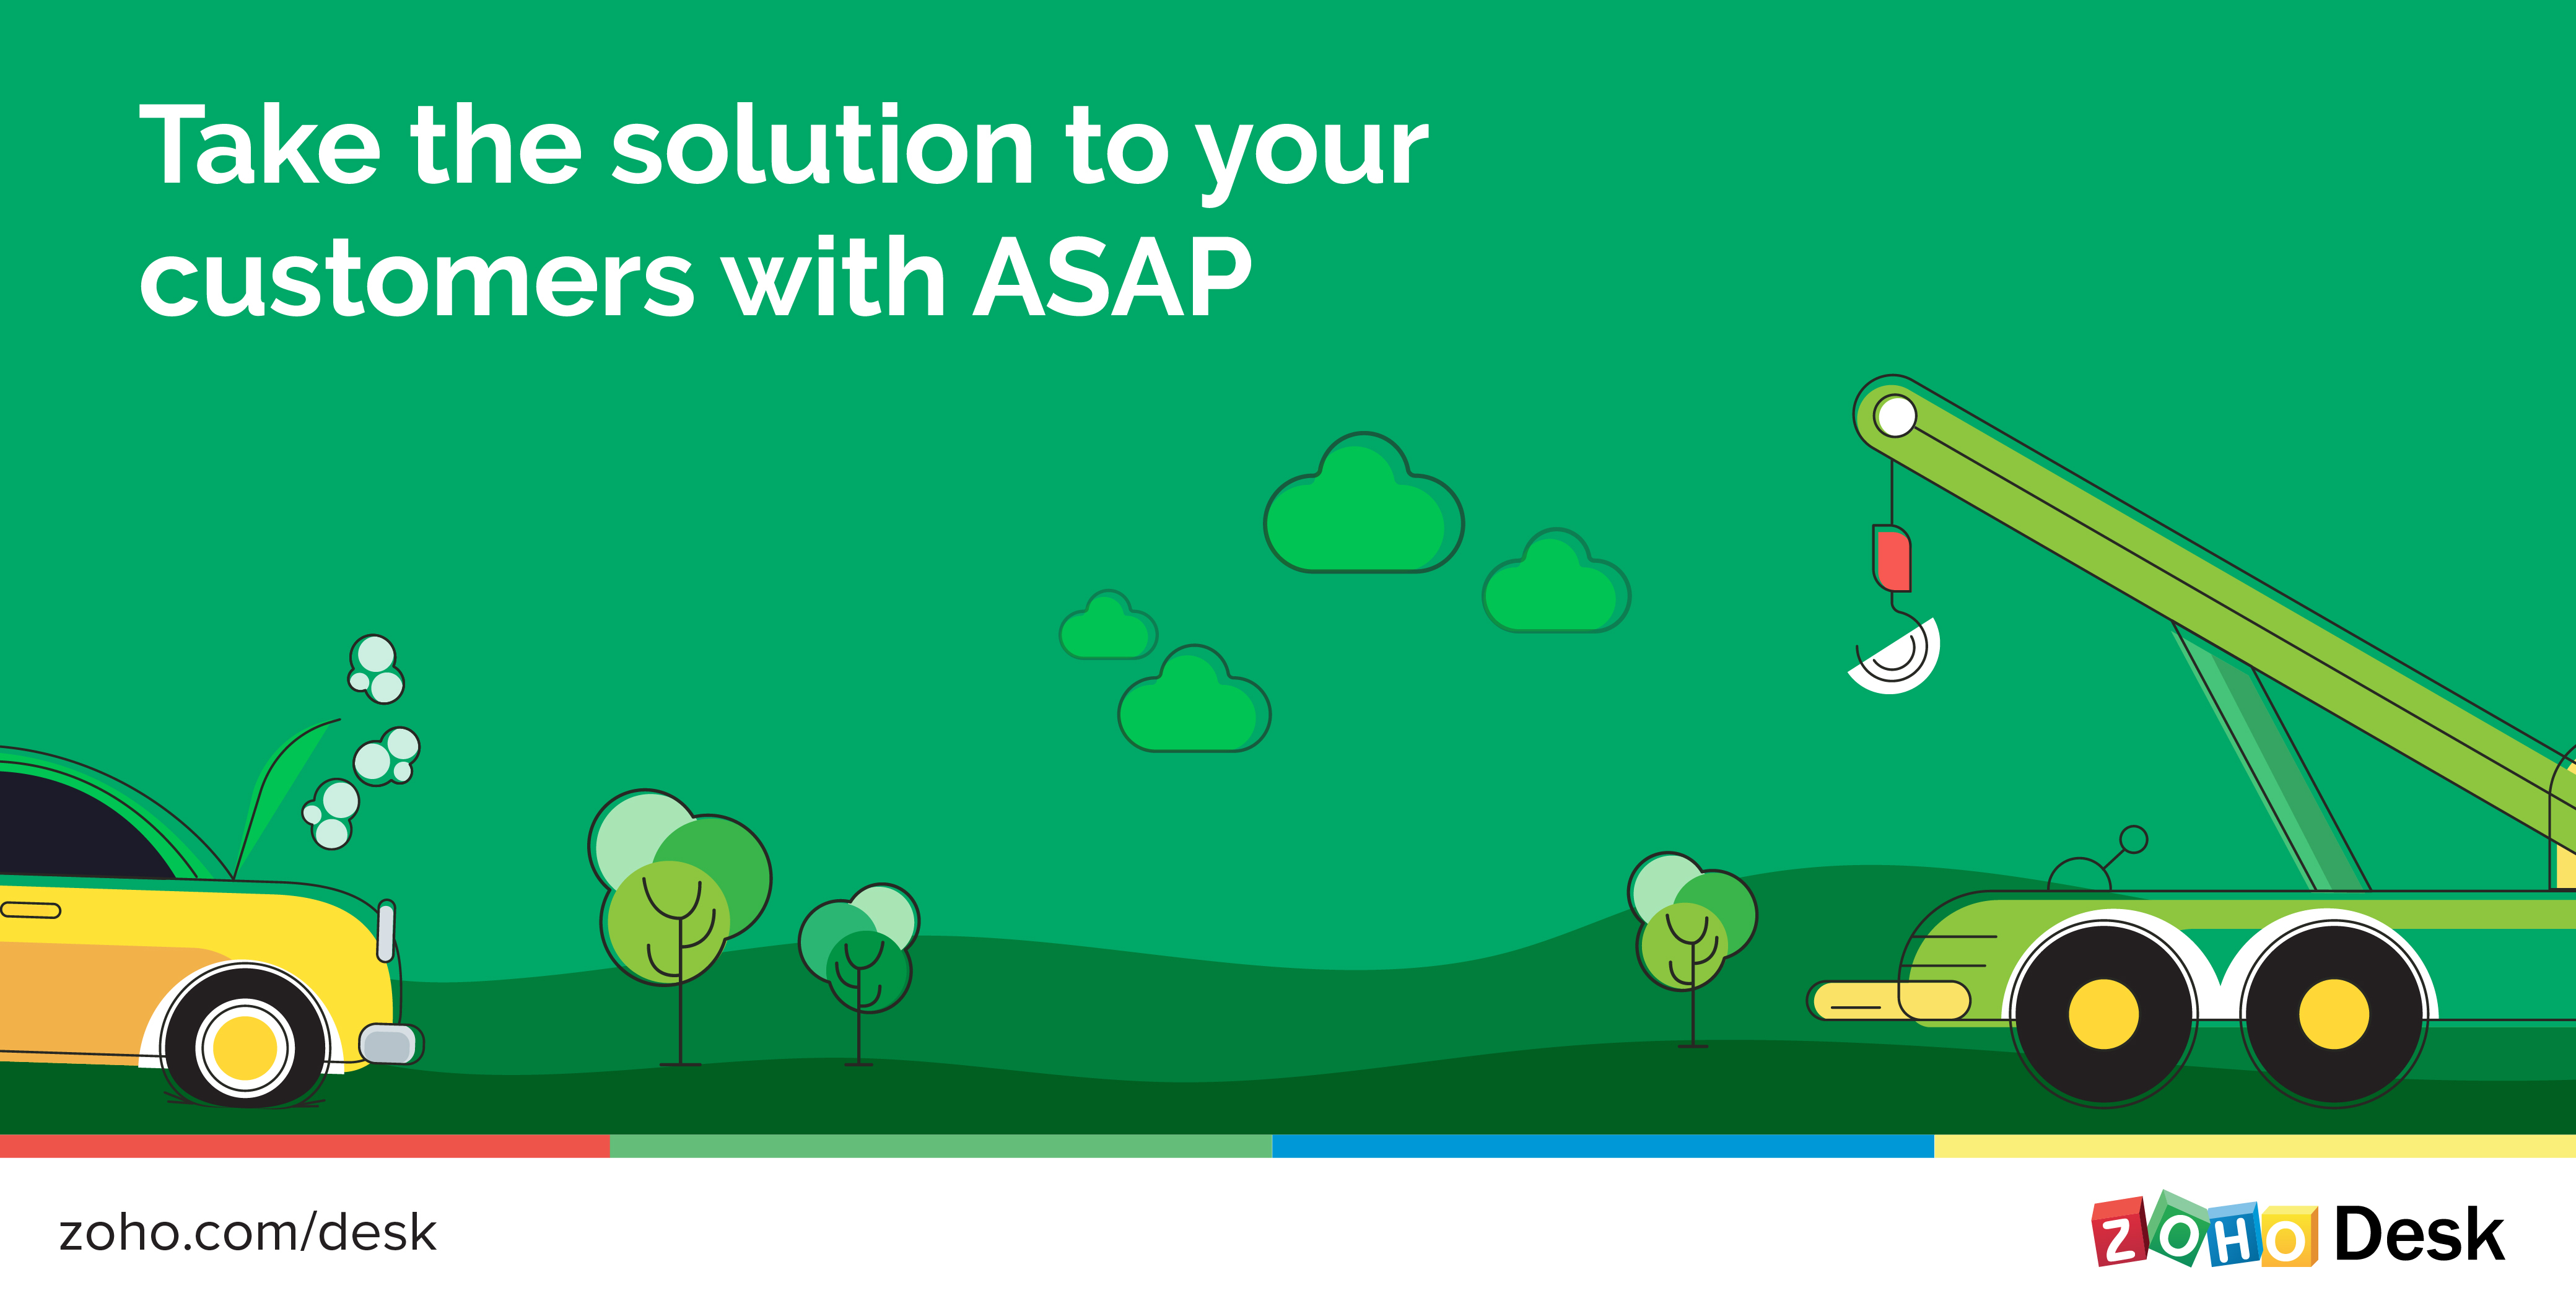 Customers get answers even before they can ask, with ASAP